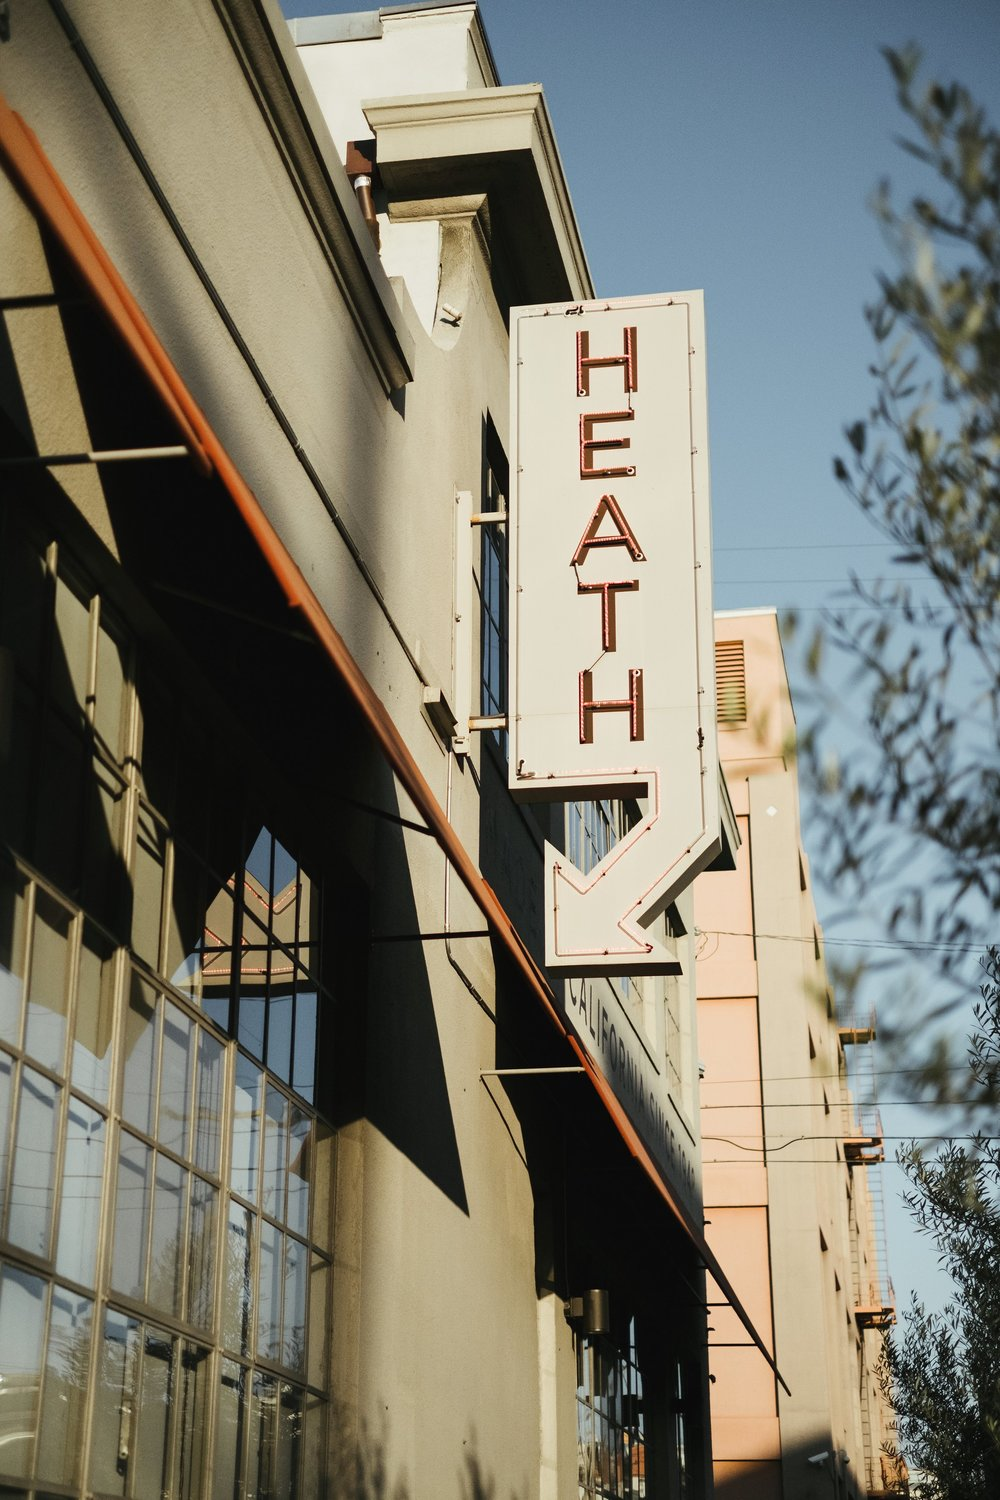 Heath Ceramics - The Mission San Francisco